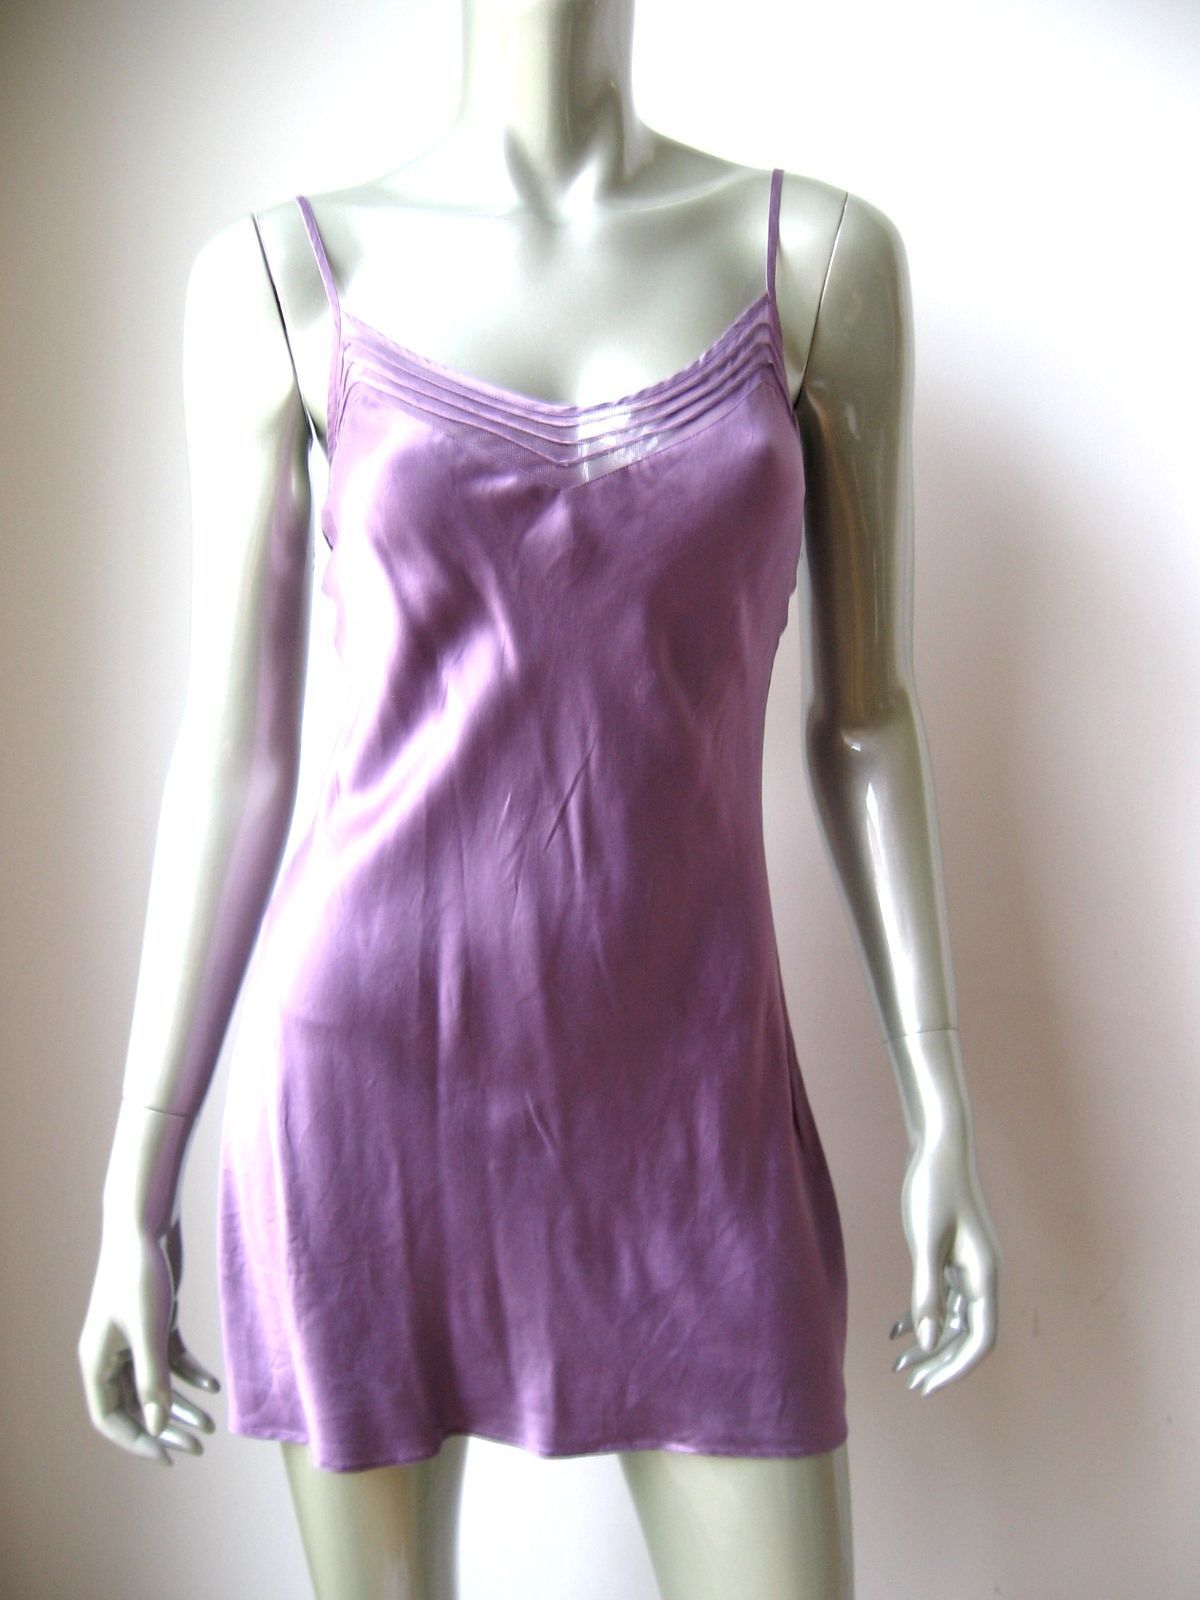 338b2291b6 Victoria s Secret NEW Lilac Pure Silk Sheer Mesh Cup Line Pullover Chemise  XS PR For Sale - Item  1621070